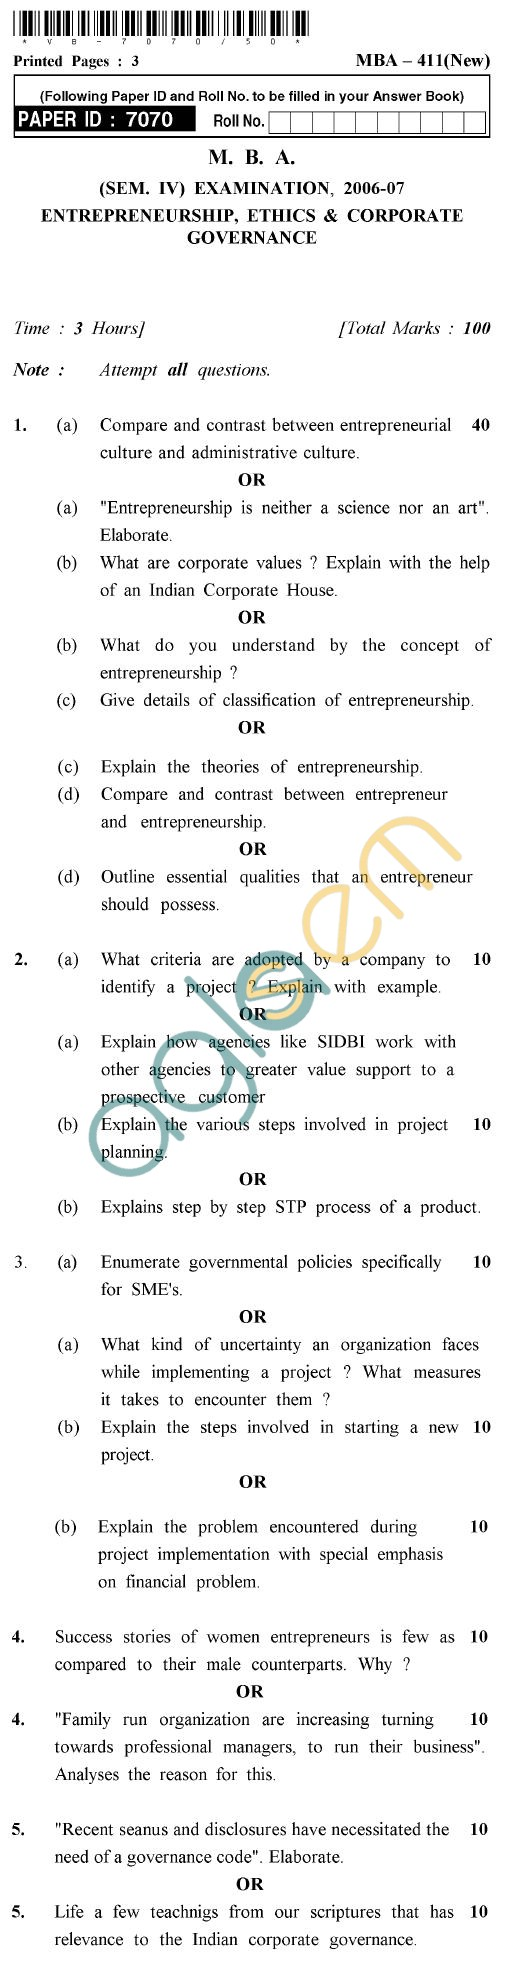 UPTU M.B.A. Question Papers - MBA-411 (New)-Entrepreneurship, Ethics & Corporate Governance